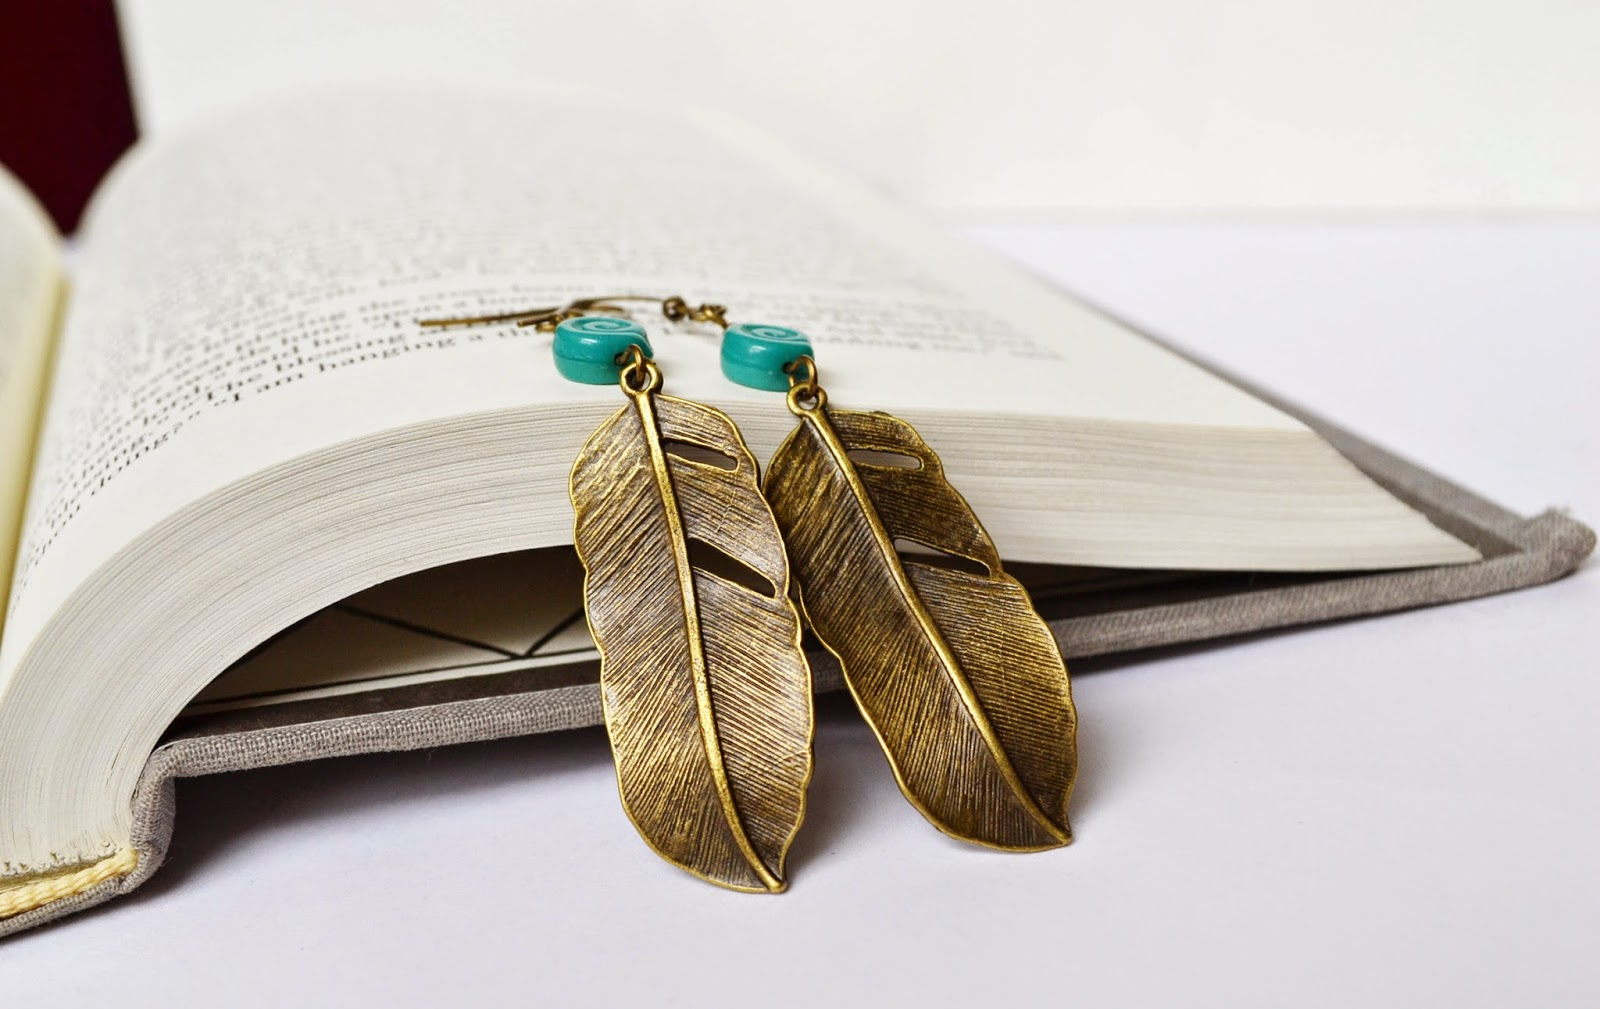 https://www.etsy.com/listing/107378903/metal-feather-earrings-swirl-bead-brass?ref=shop_home_active_23